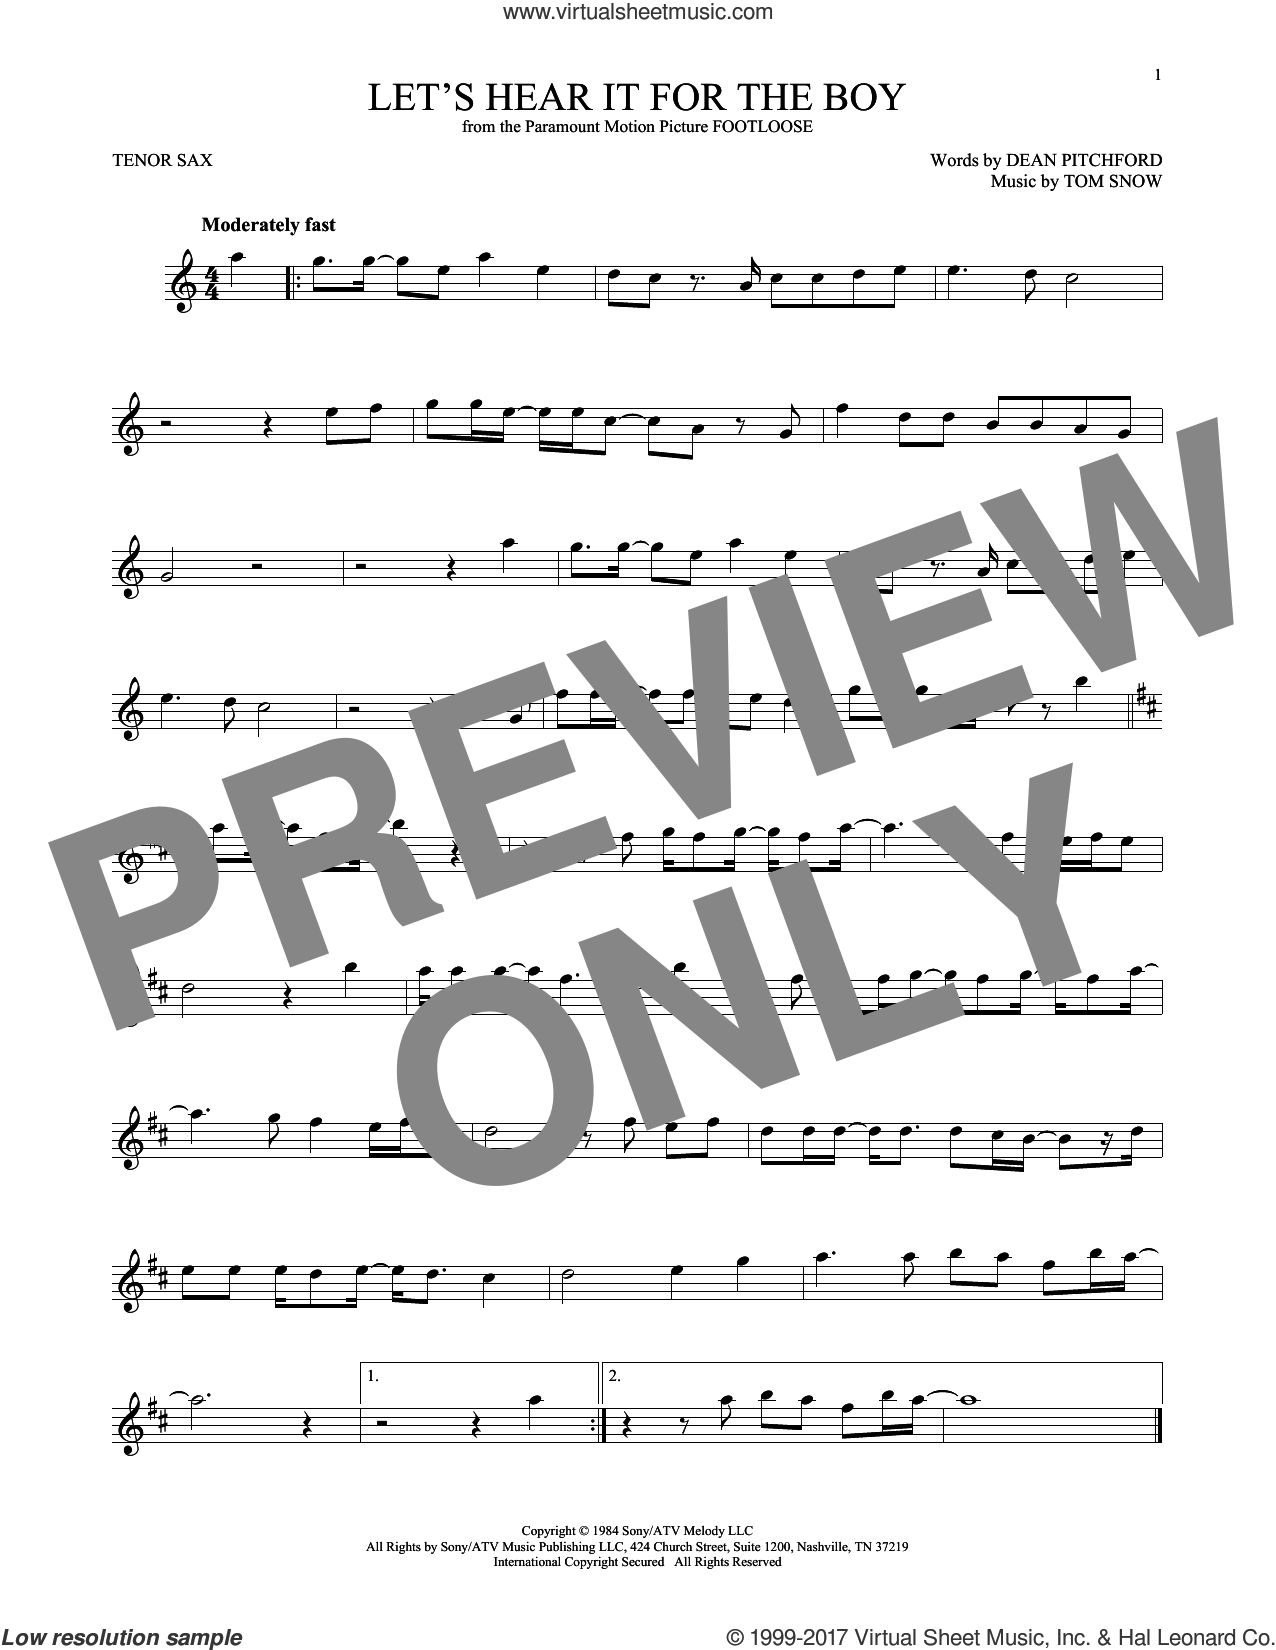 Let's Hear It For The Boy sheet music for tenor saxophone solo ( Sax) by Tom Snow and Dean Pitchford. Score Image Preview.